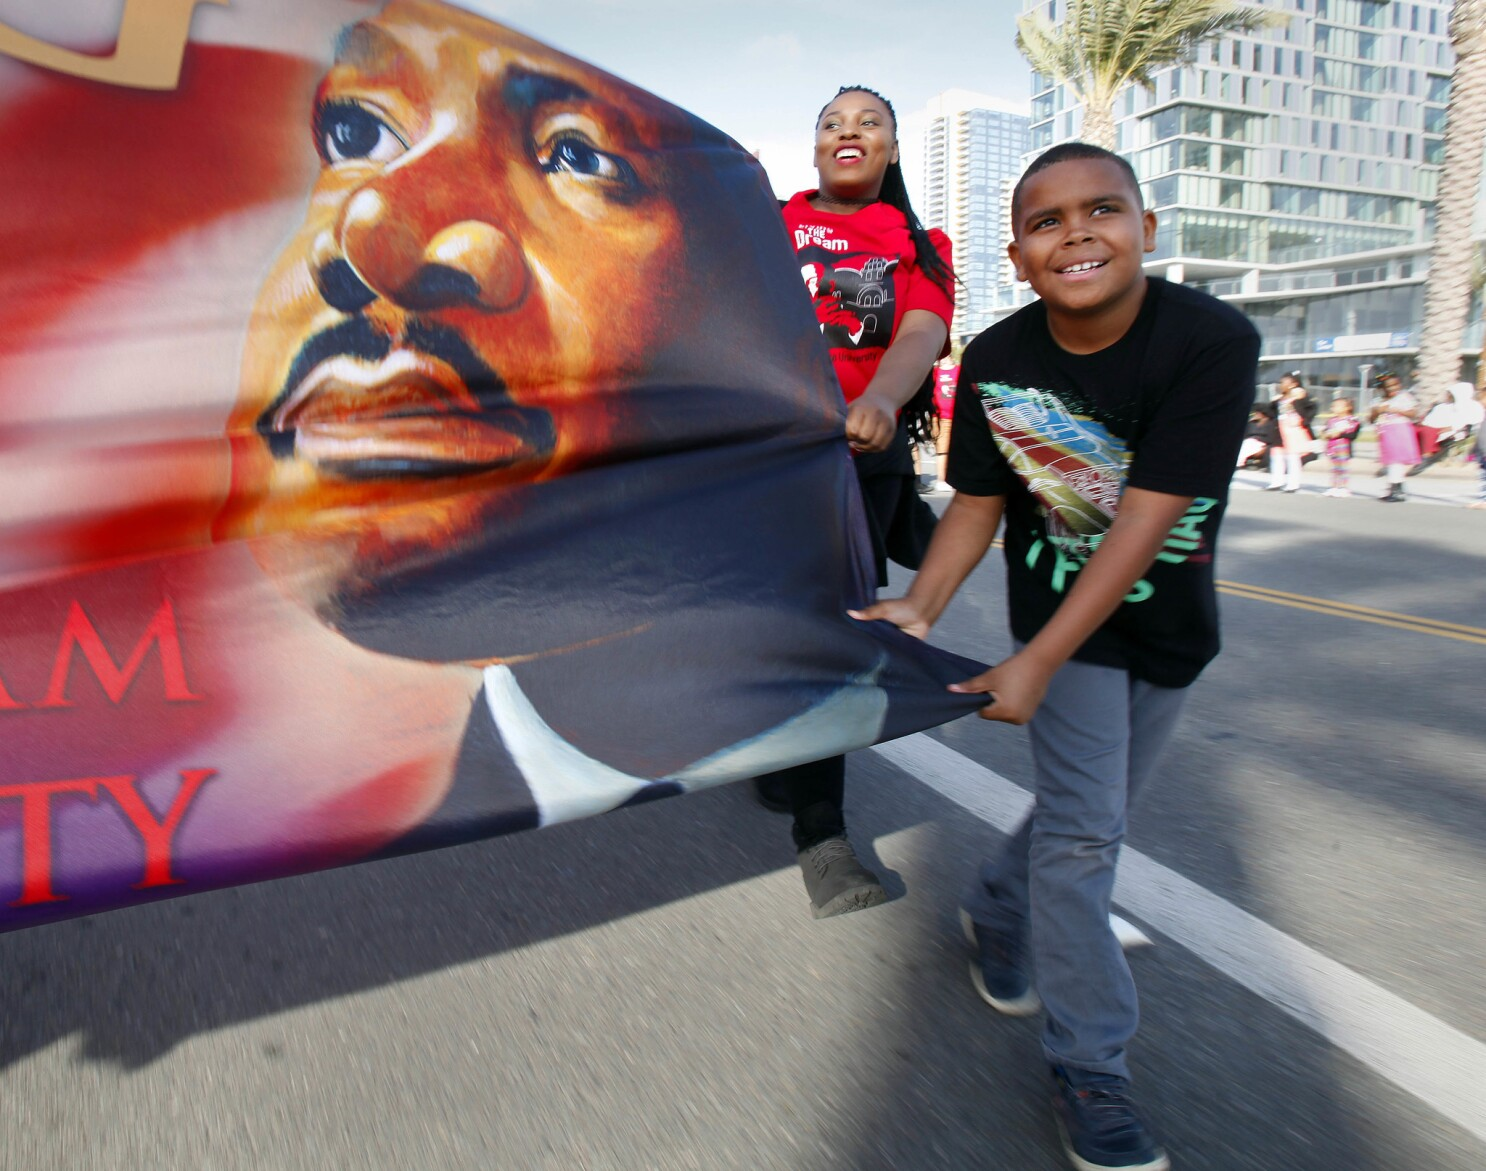 11 things to do this weekend: Martin Luther King Jr. parade, Los Lobos benefit concert, Lunar New Year